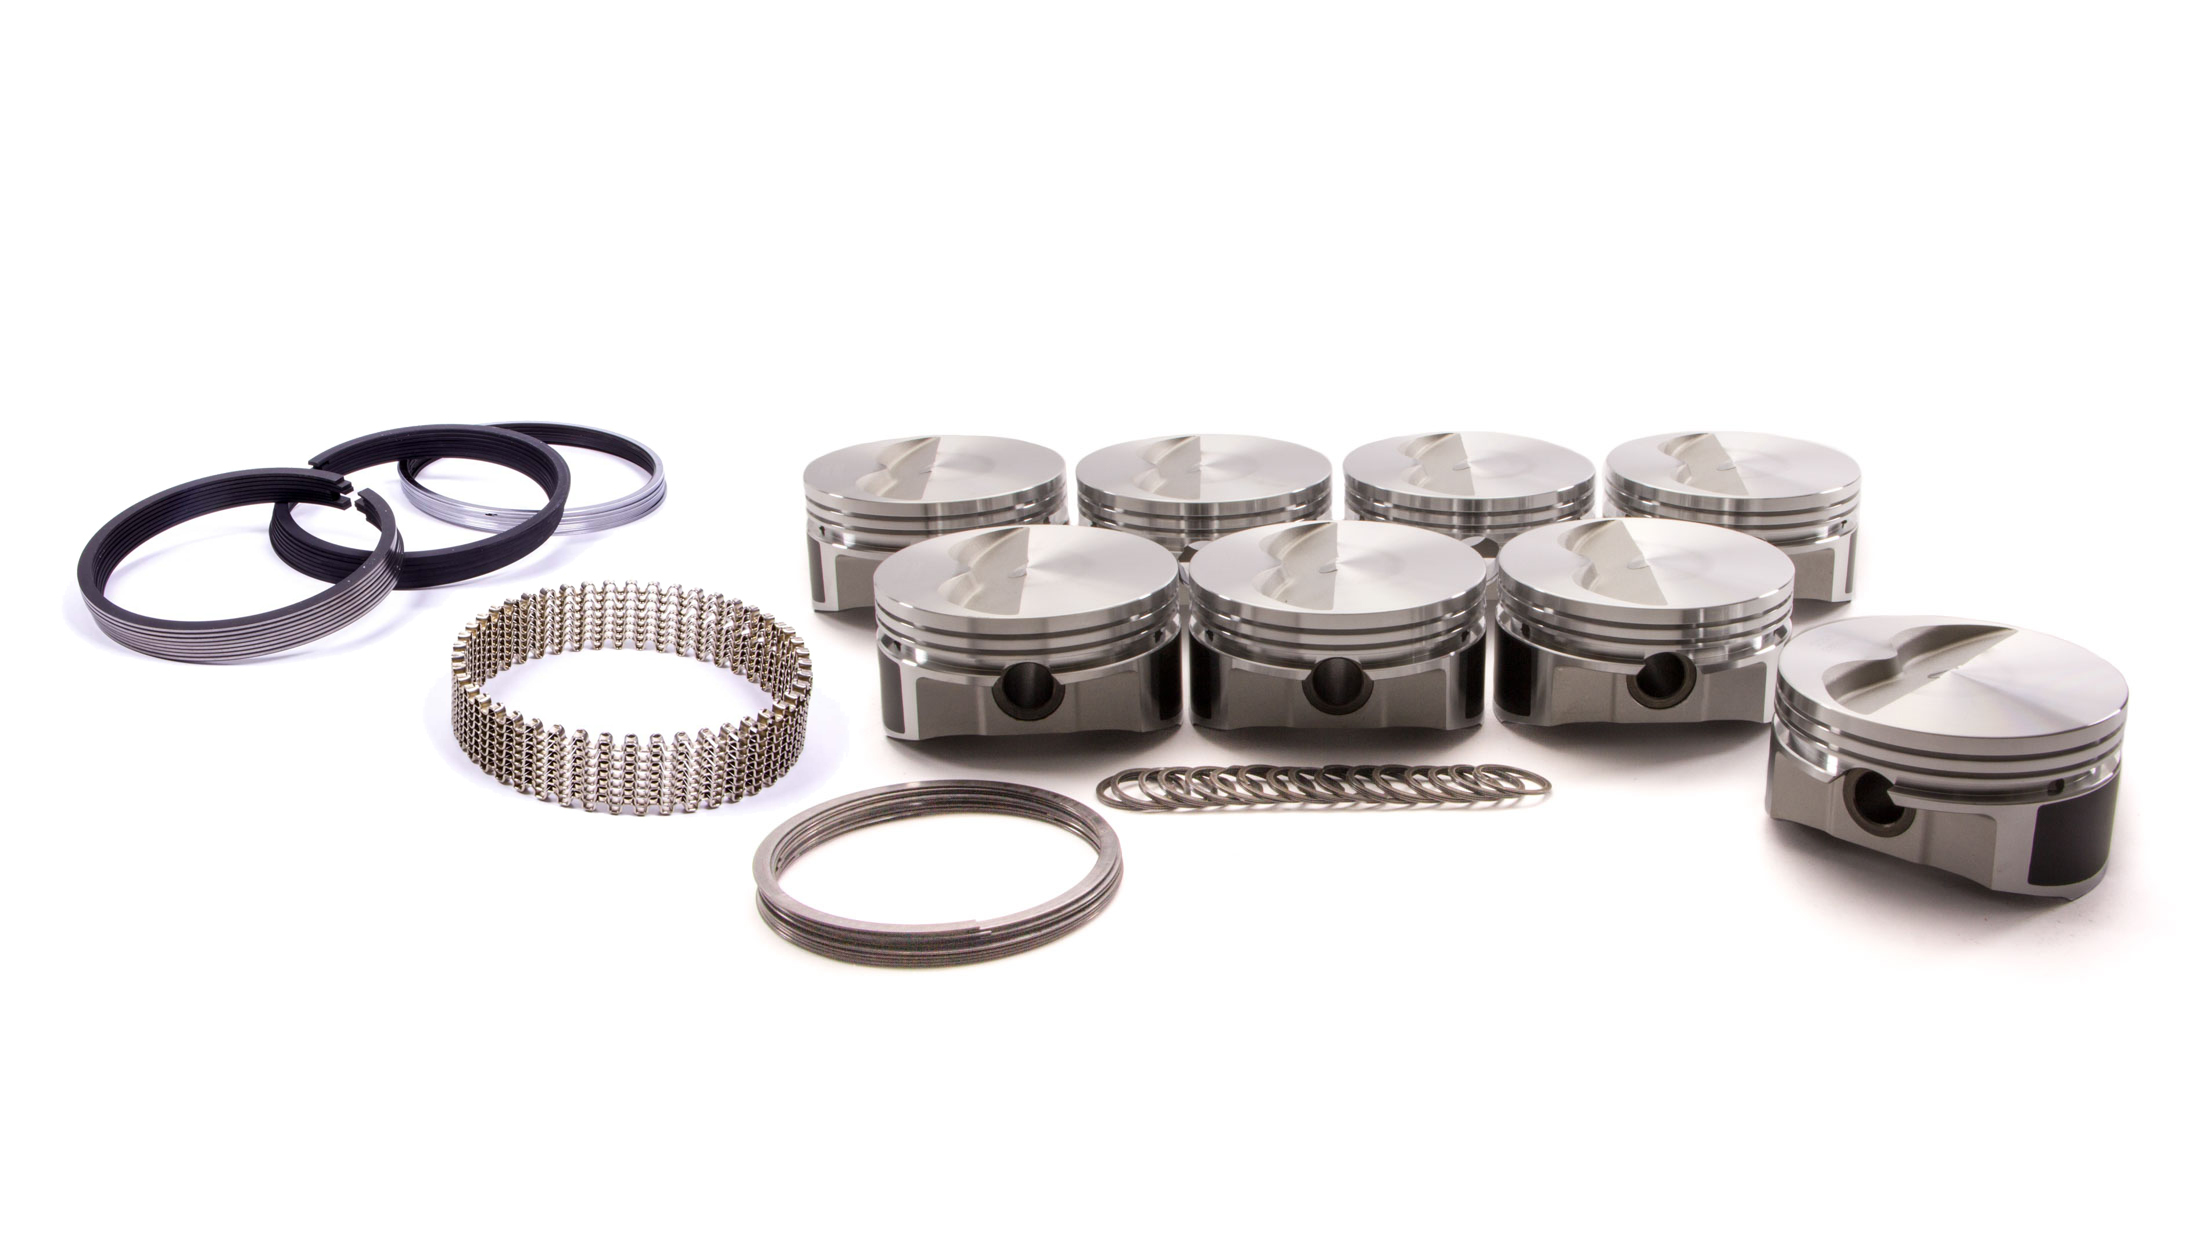 Wiseco Pro-Tru PTS506A4 Piston and Ring, 23 Degree Flat Top, Forged, 4.040 in Bore, 1/16 x 1/16 x 3/16 in Ring Grooves, Minus 5.0 cc, Small Block Chevy, Kit